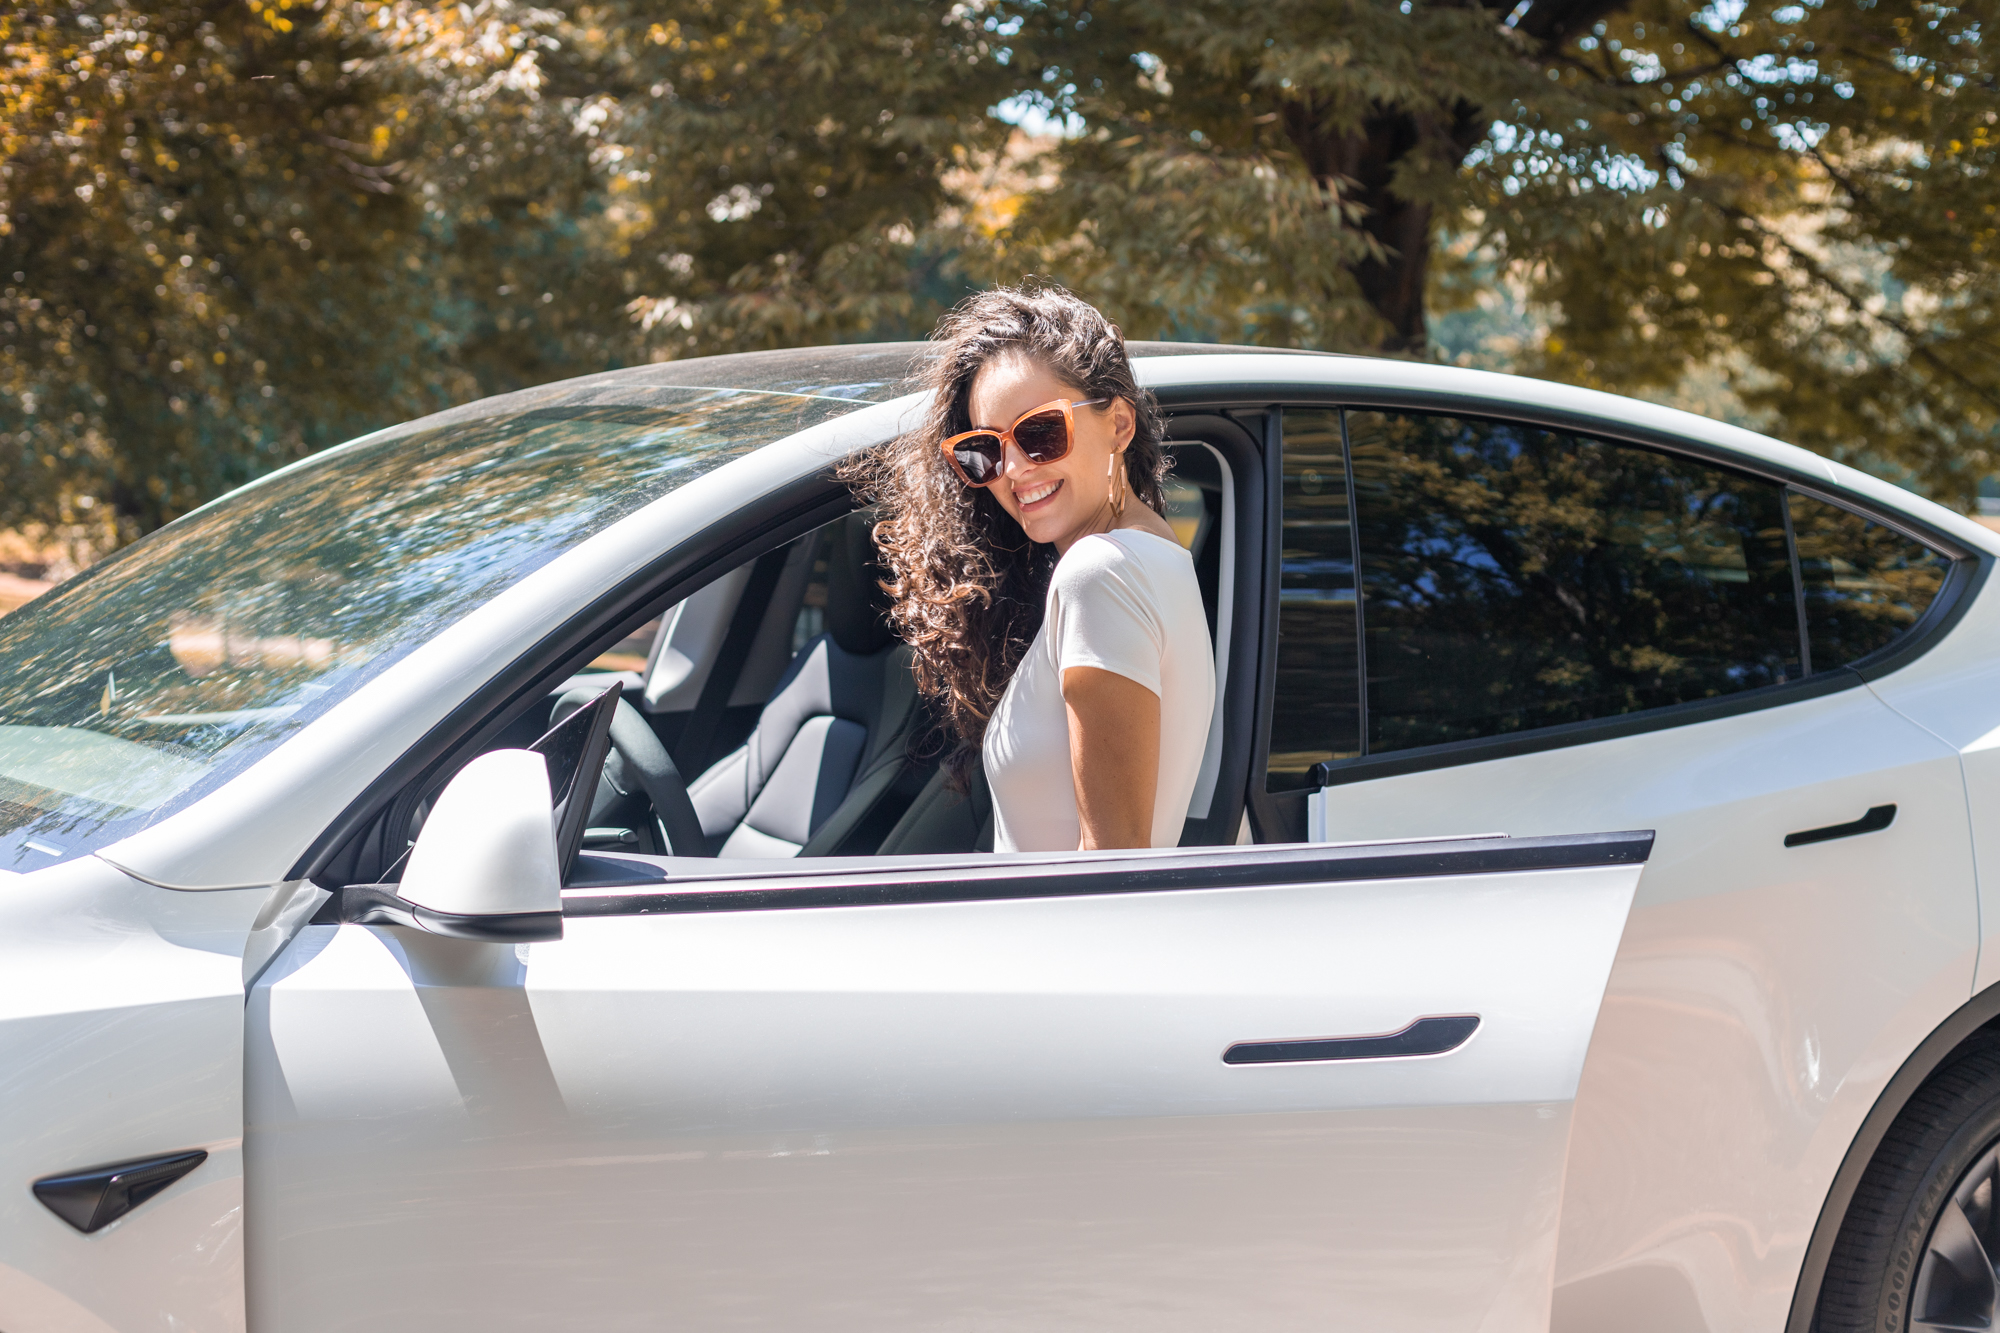 the process of buying a tesla, what to expect when buying a tesla, ordering a tesla, tesla experience, tesla wait time, tesla estimated delivery dates, tesla vin, tesla model y wait times, tesla financing